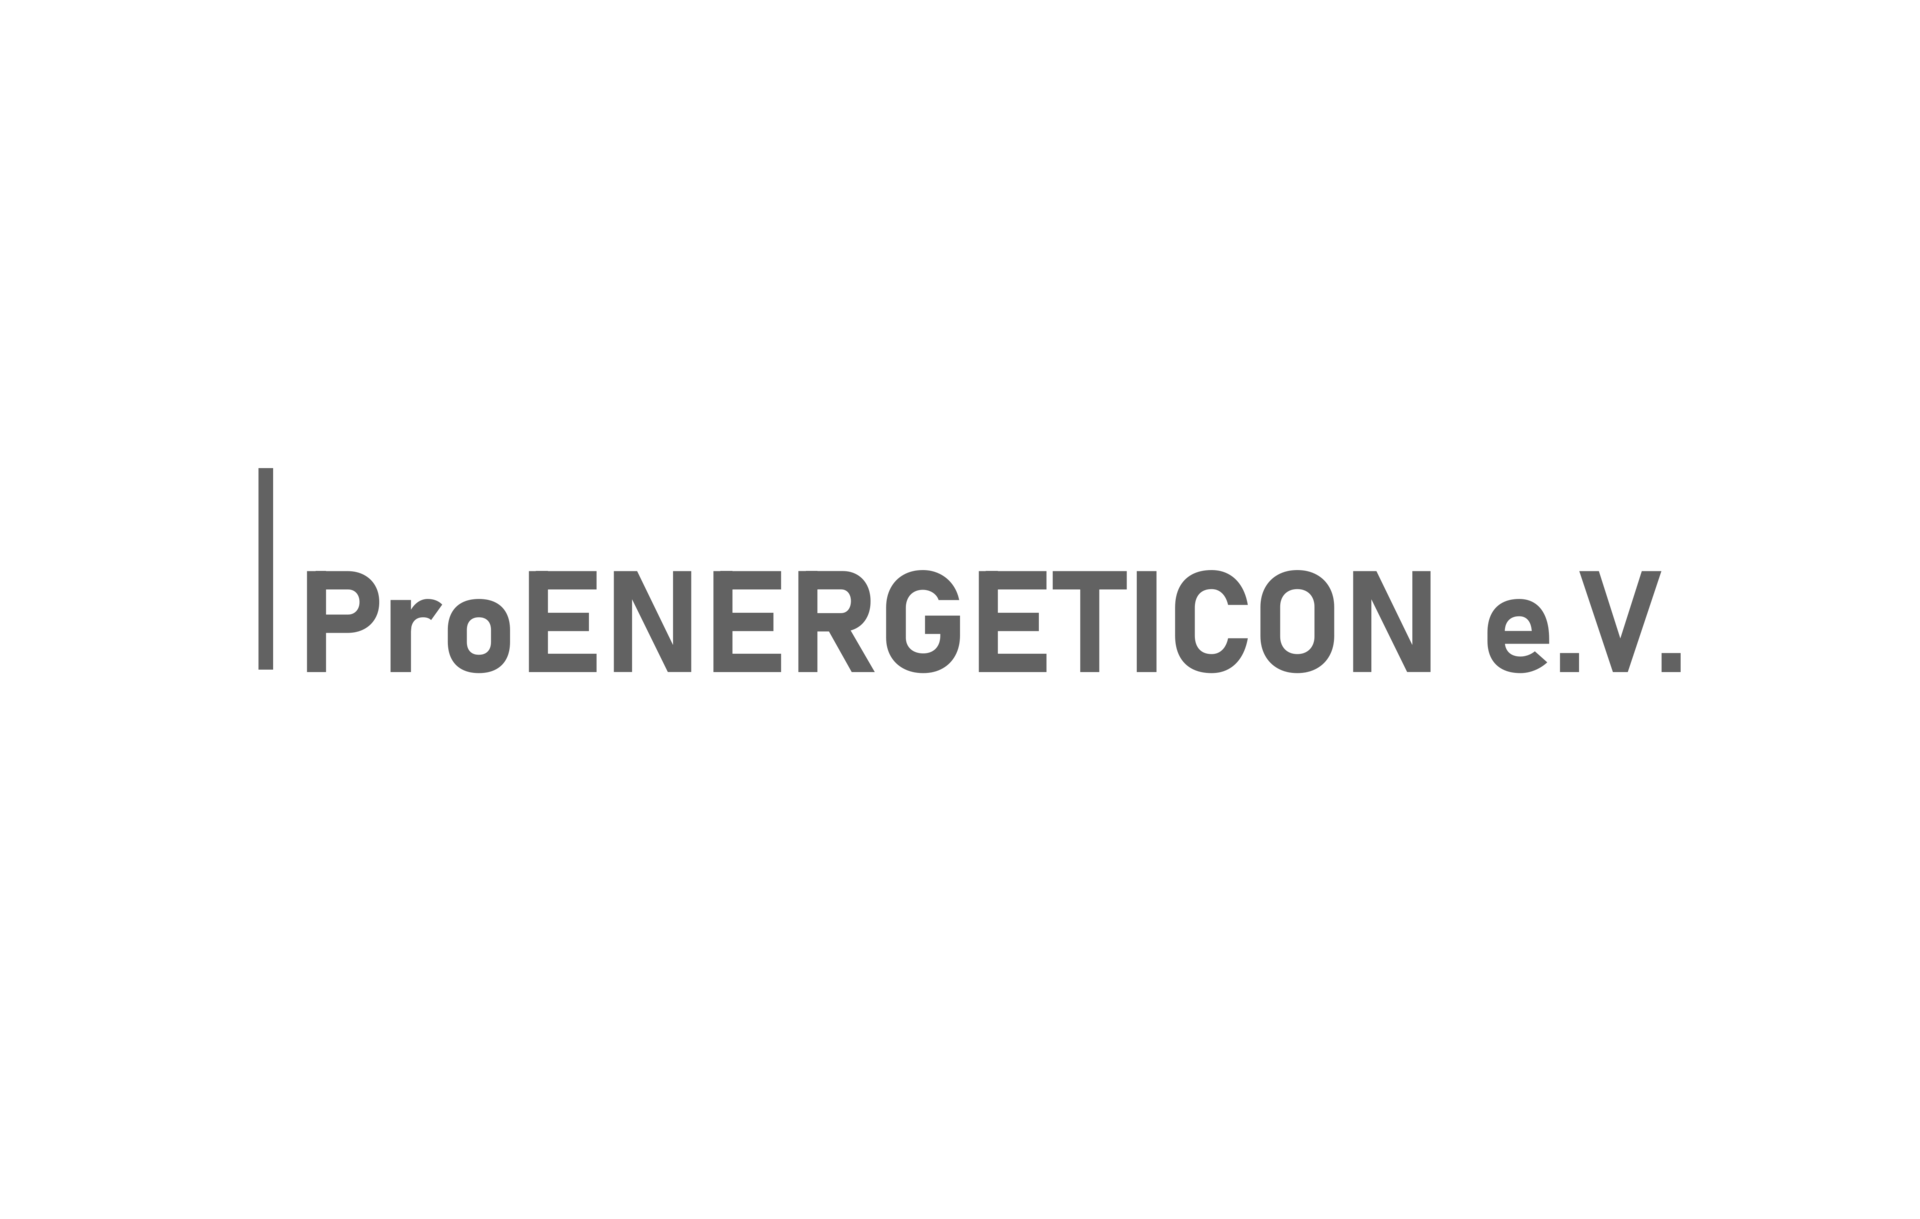 ProENERGETICON